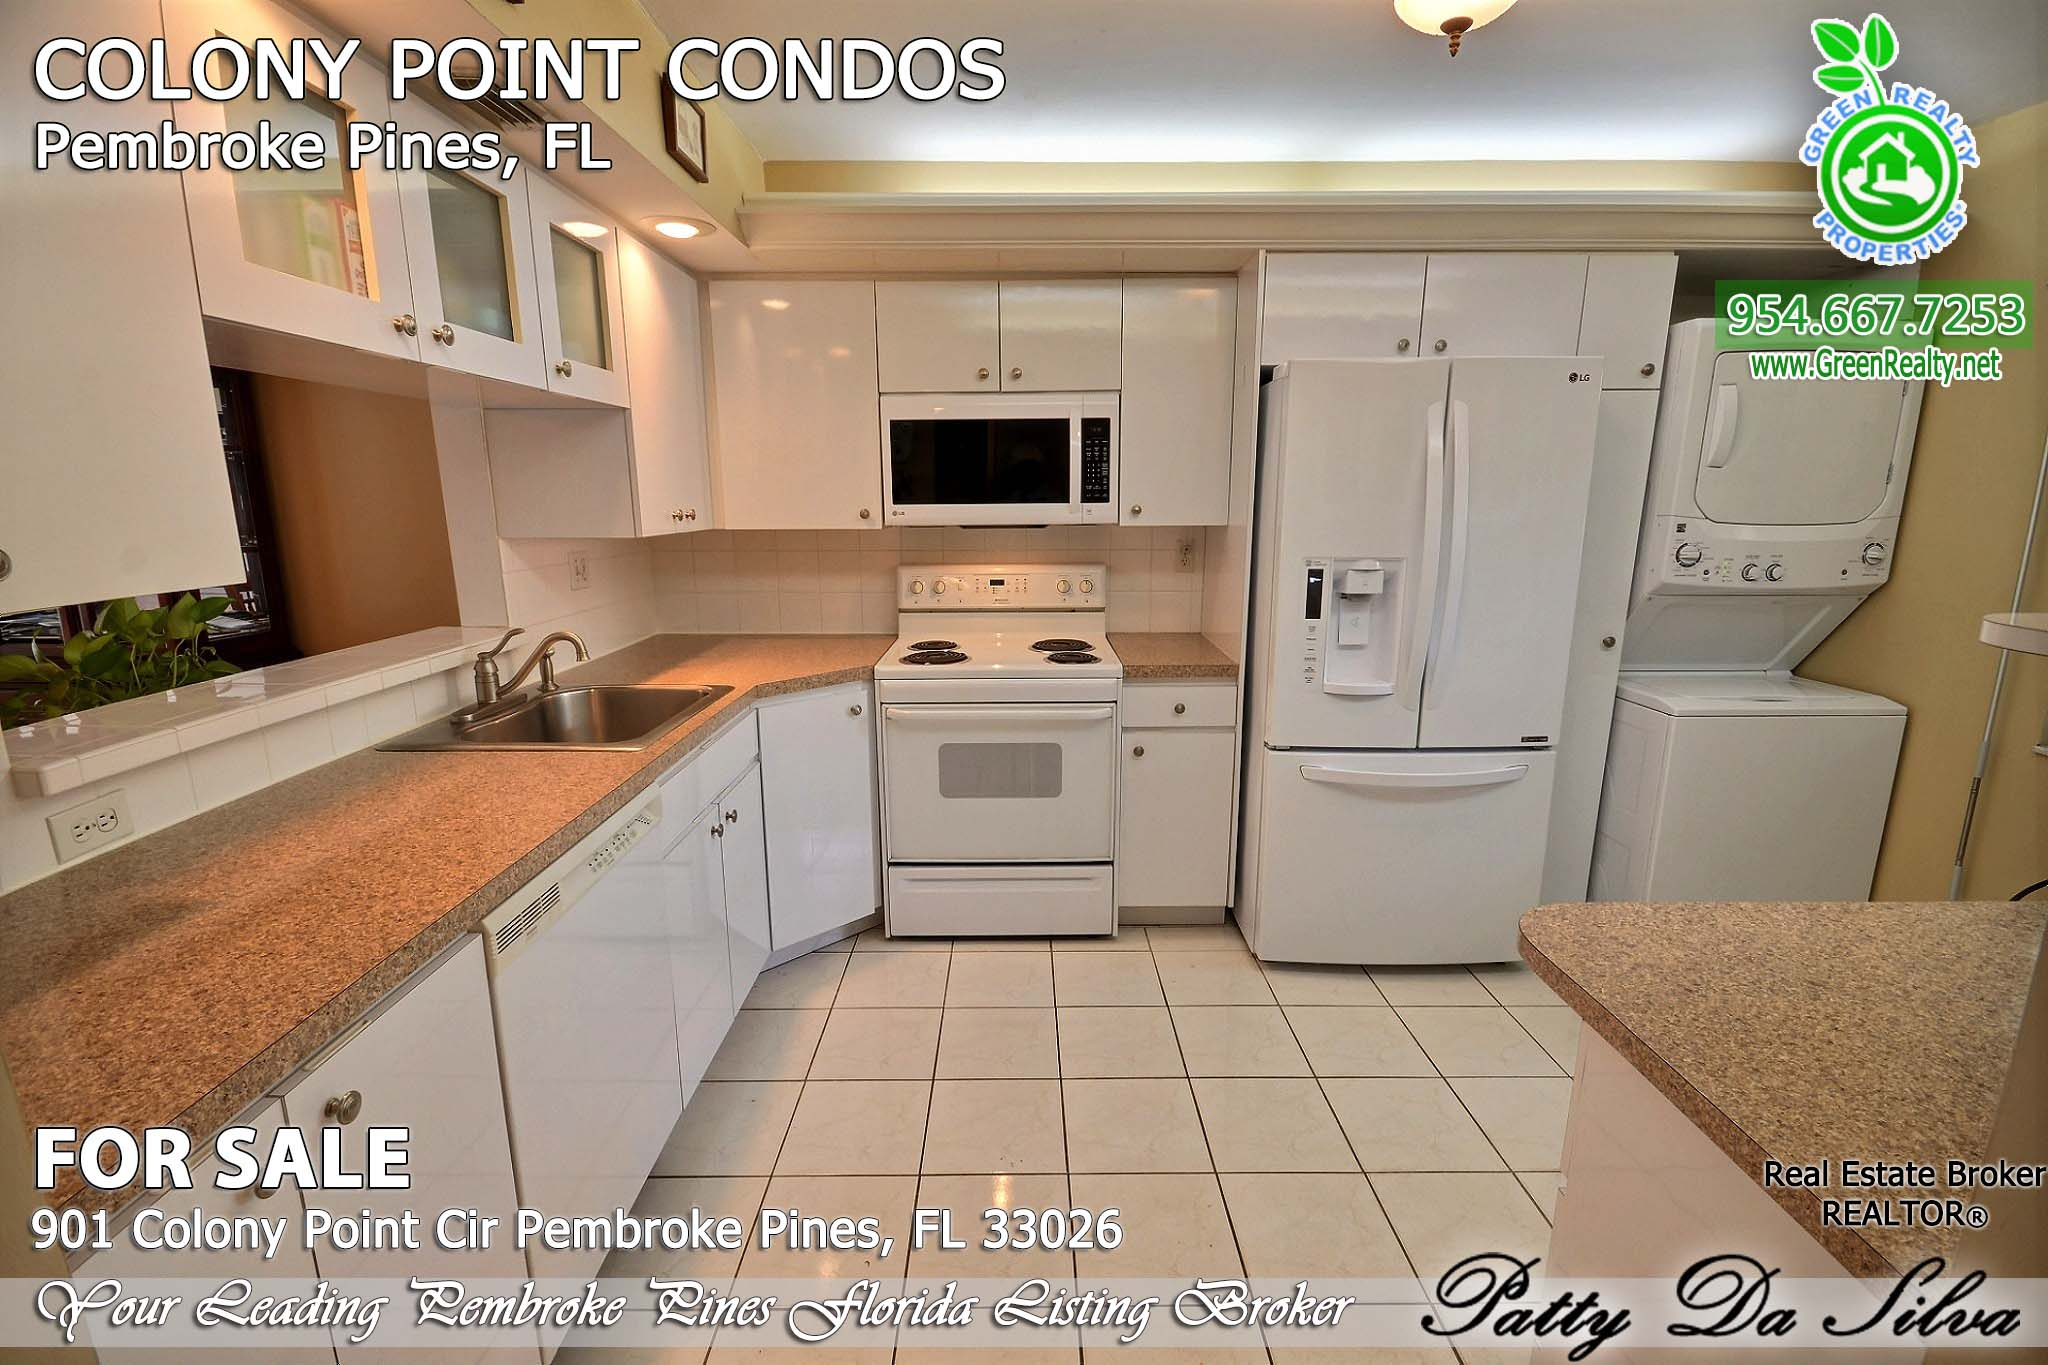 901 Colony Point Cir, Unit 112 - Pembroke Pines Homes For Sale (4)